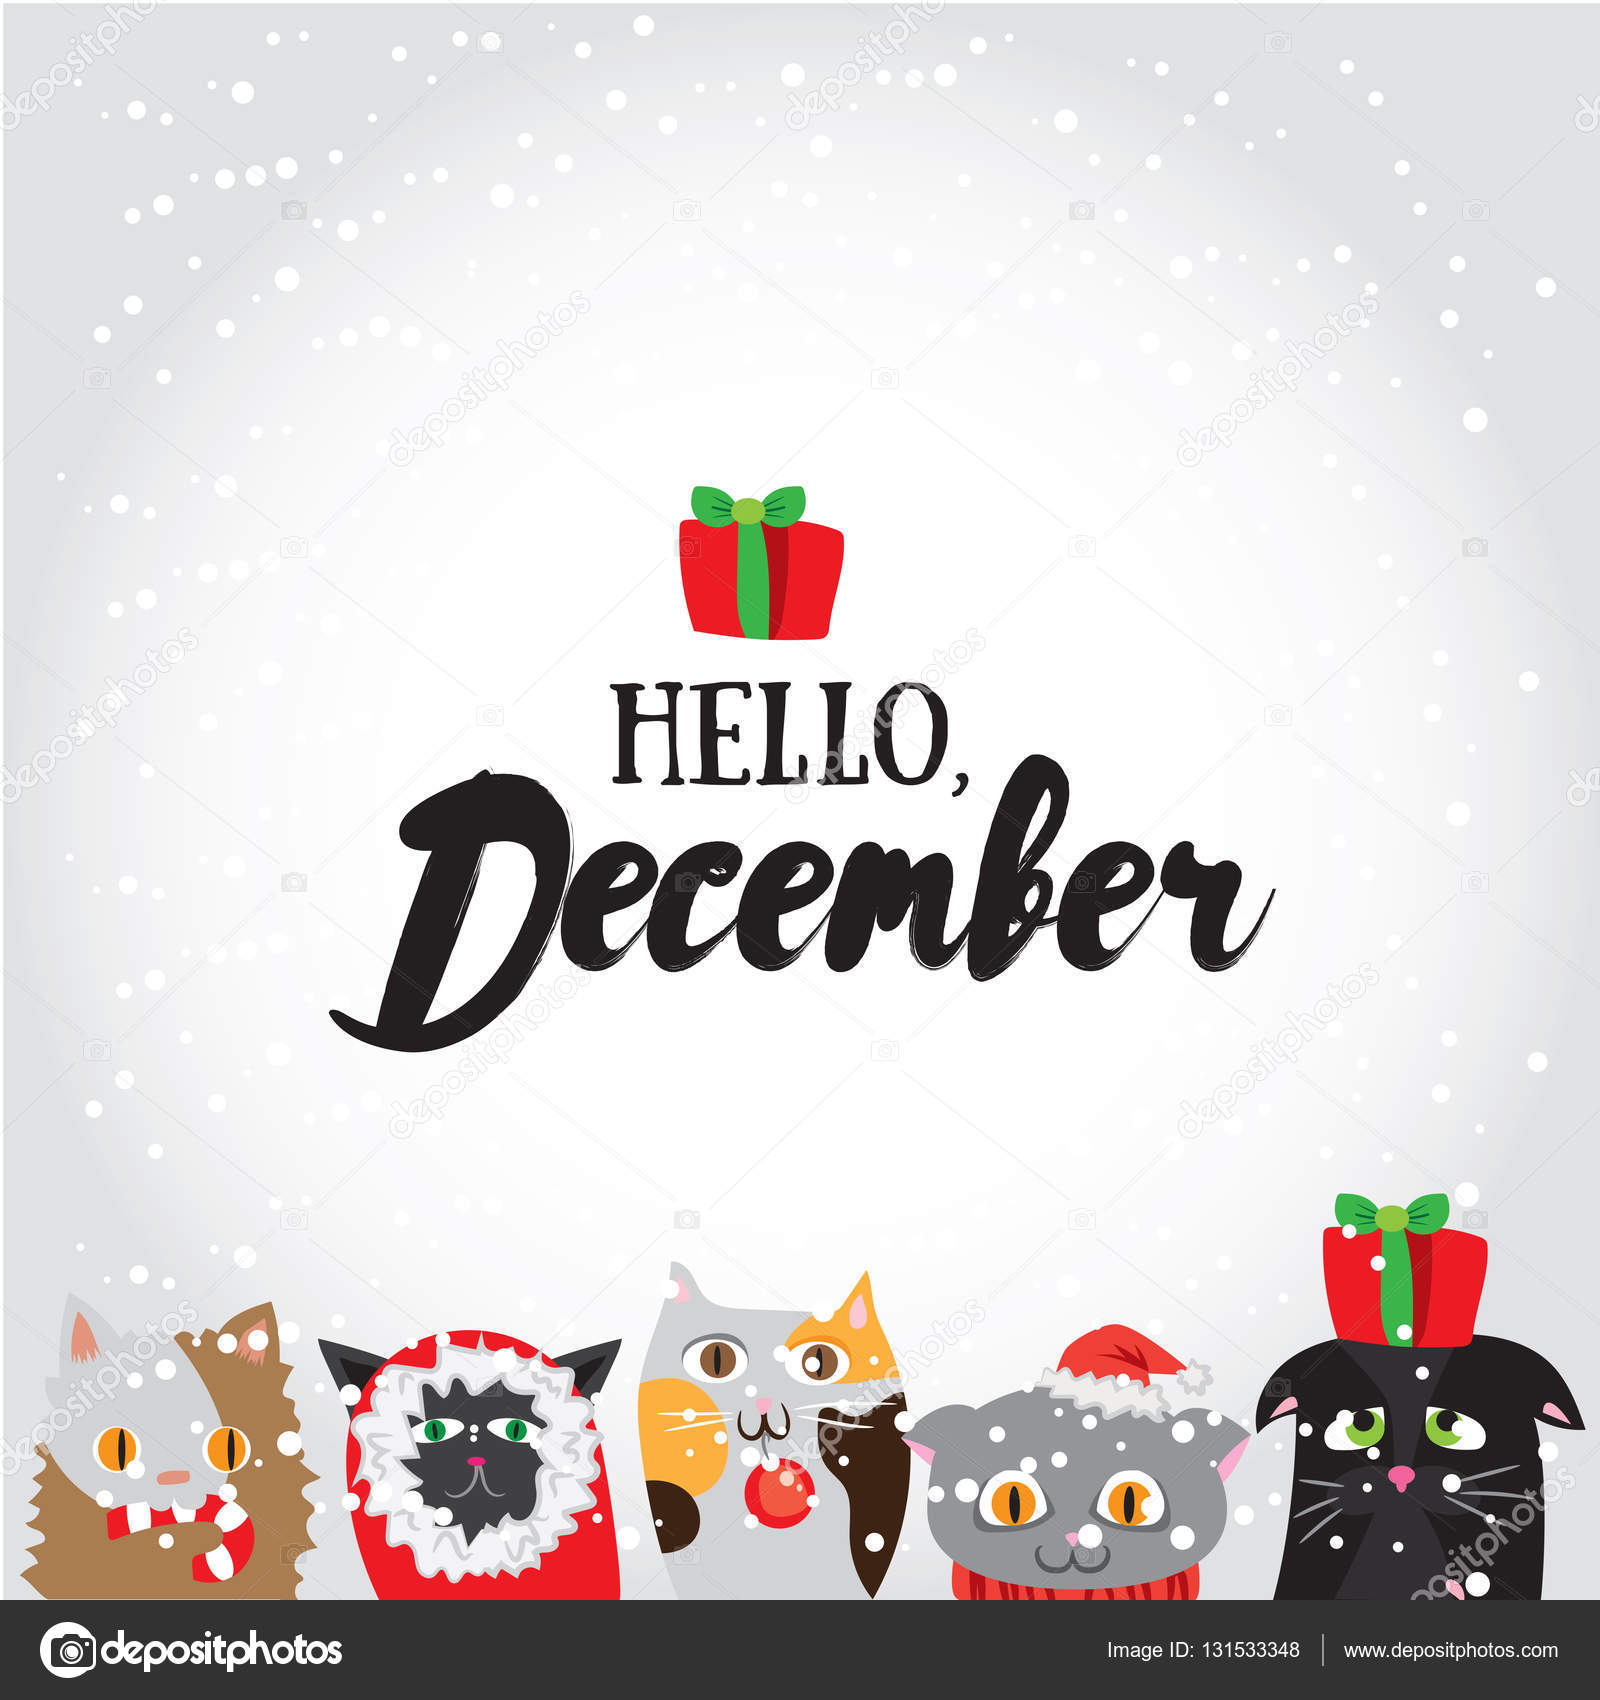 Hello, December. Holiday greeting card with cute cat characters and ...